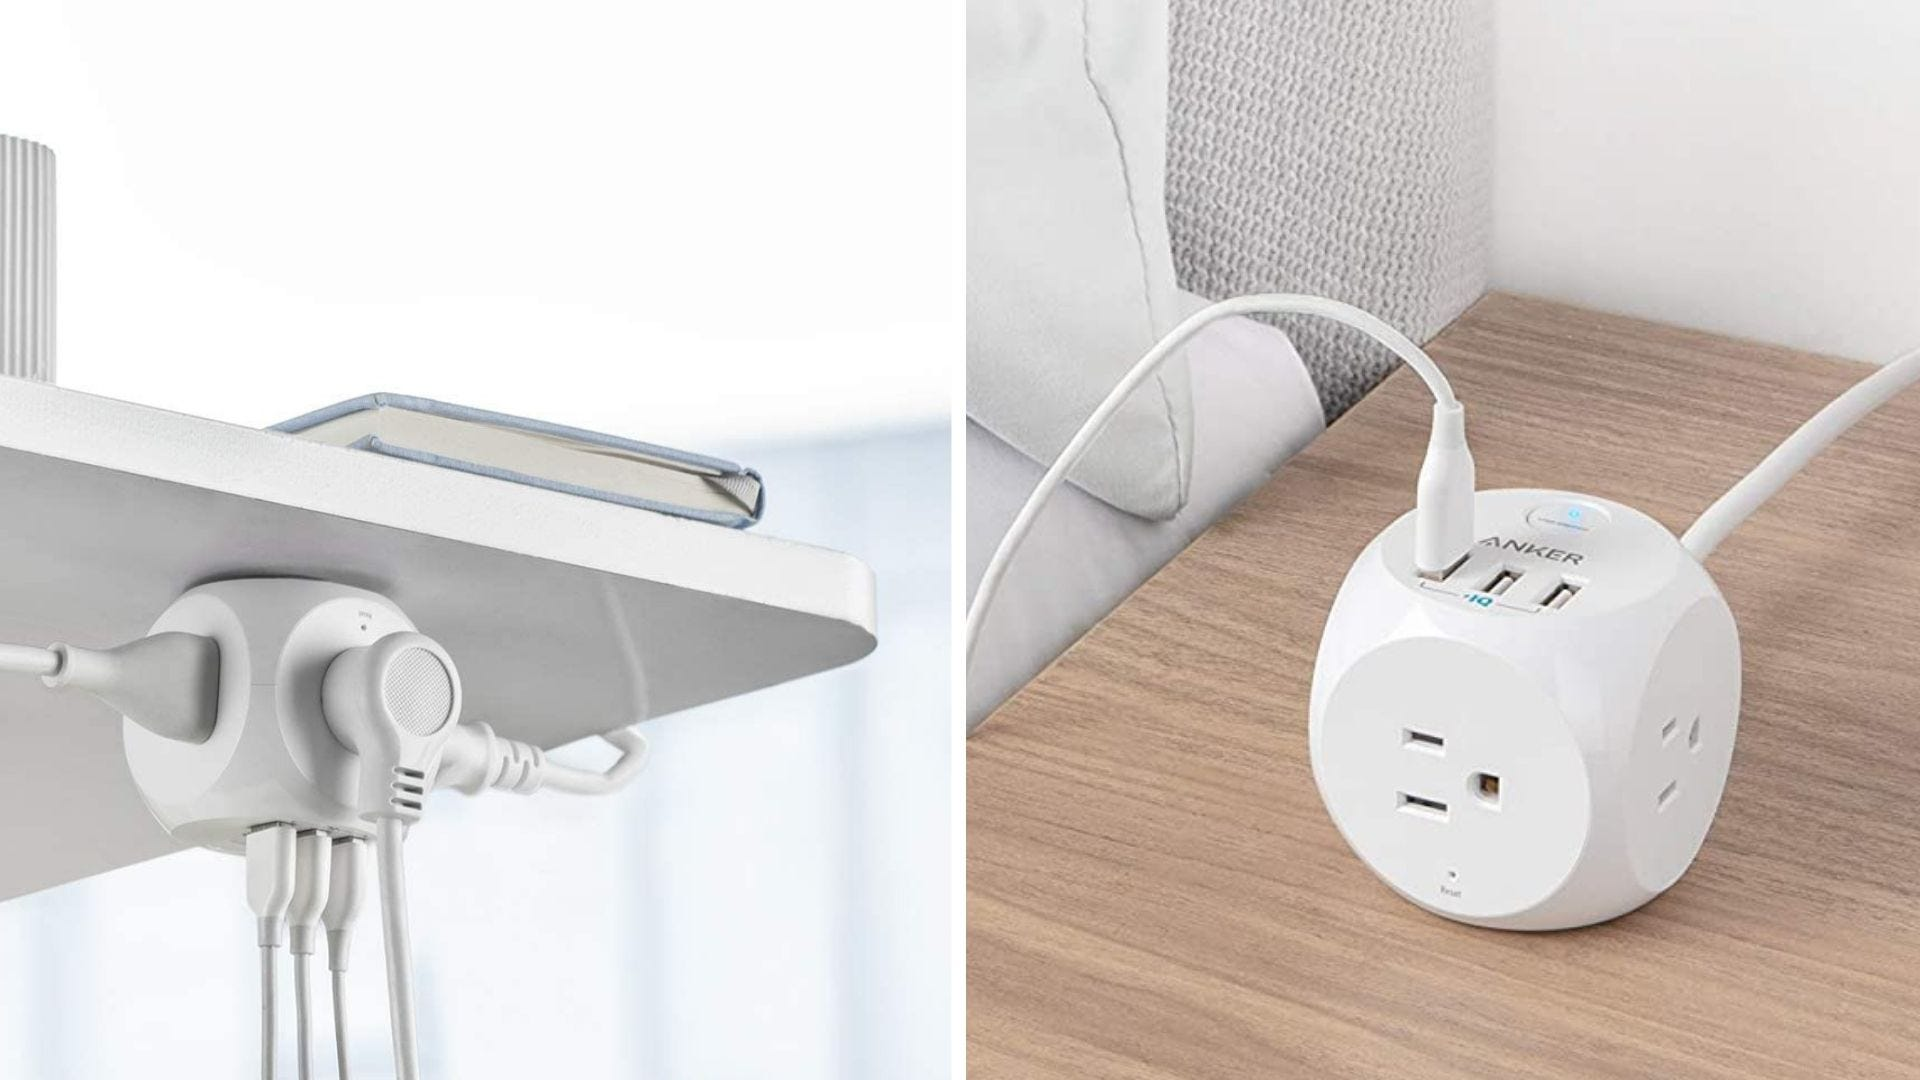 A multi-use charger is attached to the underside of a table and sits on top of a table